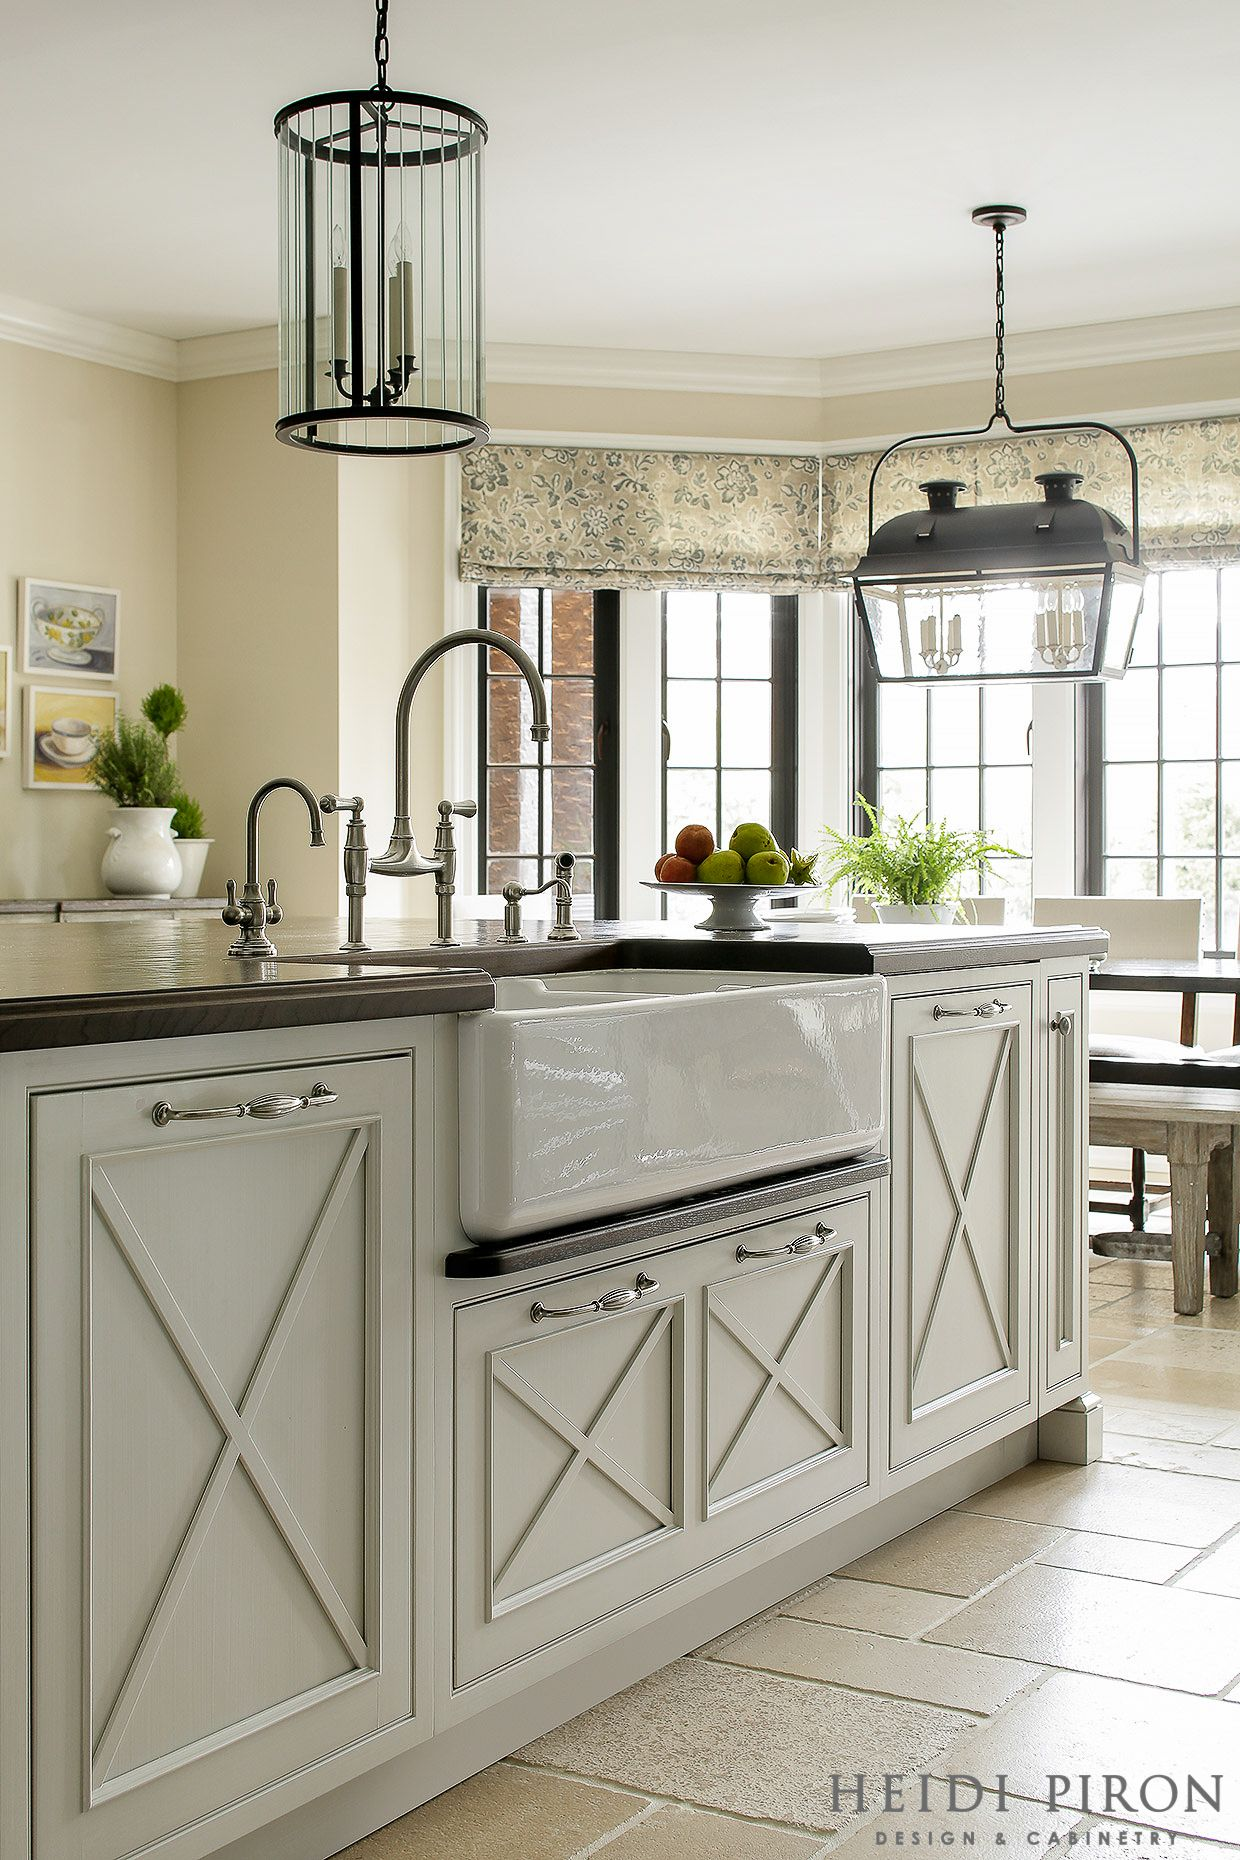 Award Winning Kitchen Designer, Heidi Piron, Creates Hand Crafted Kitchens  And Customized